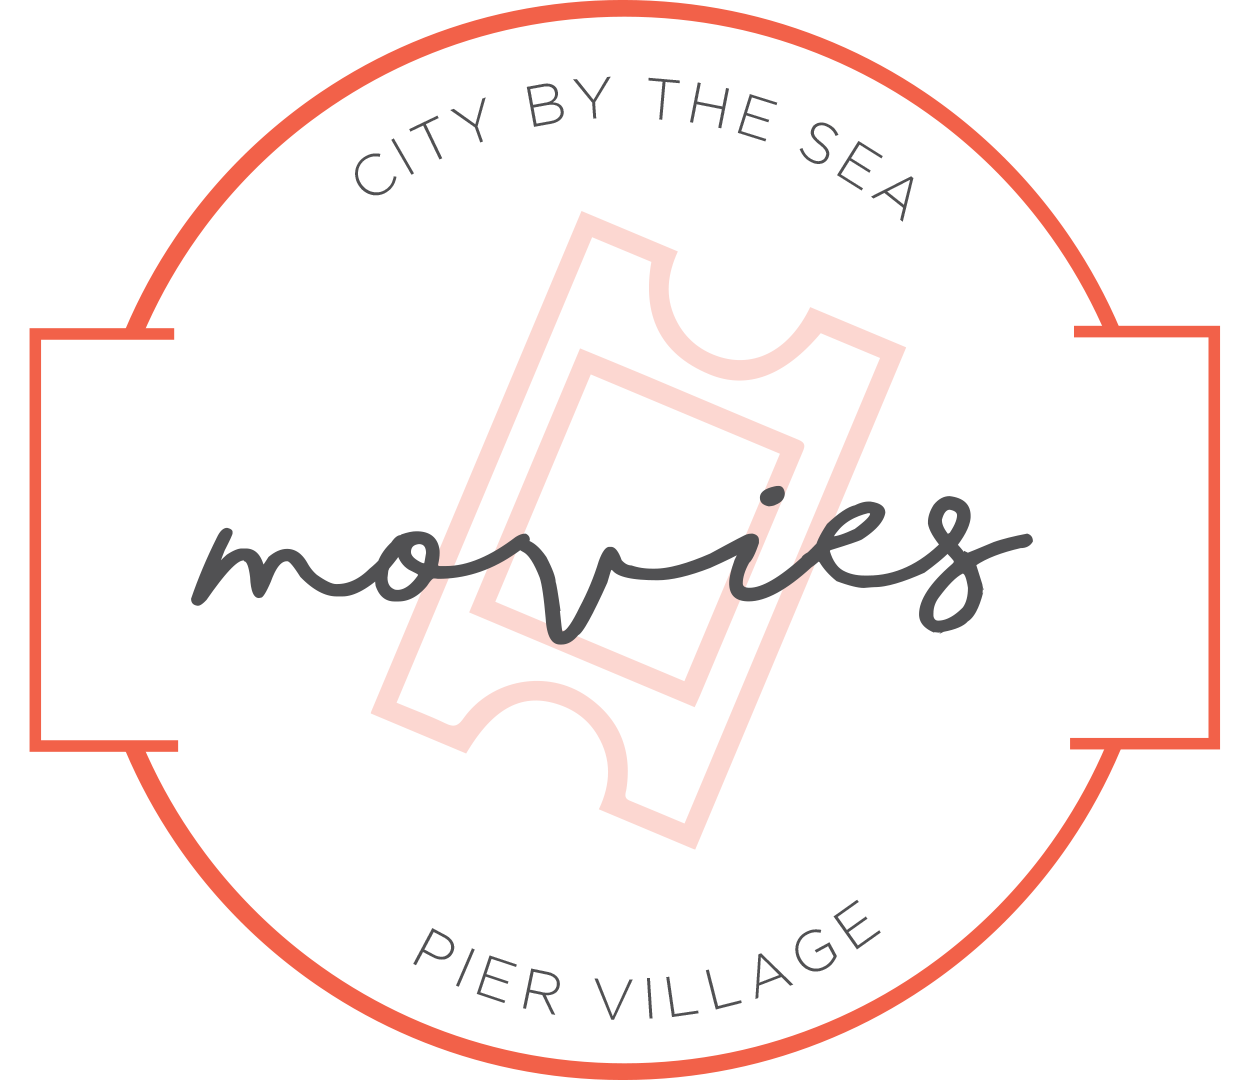 Pier Village Summer Movie Series at Pier Village